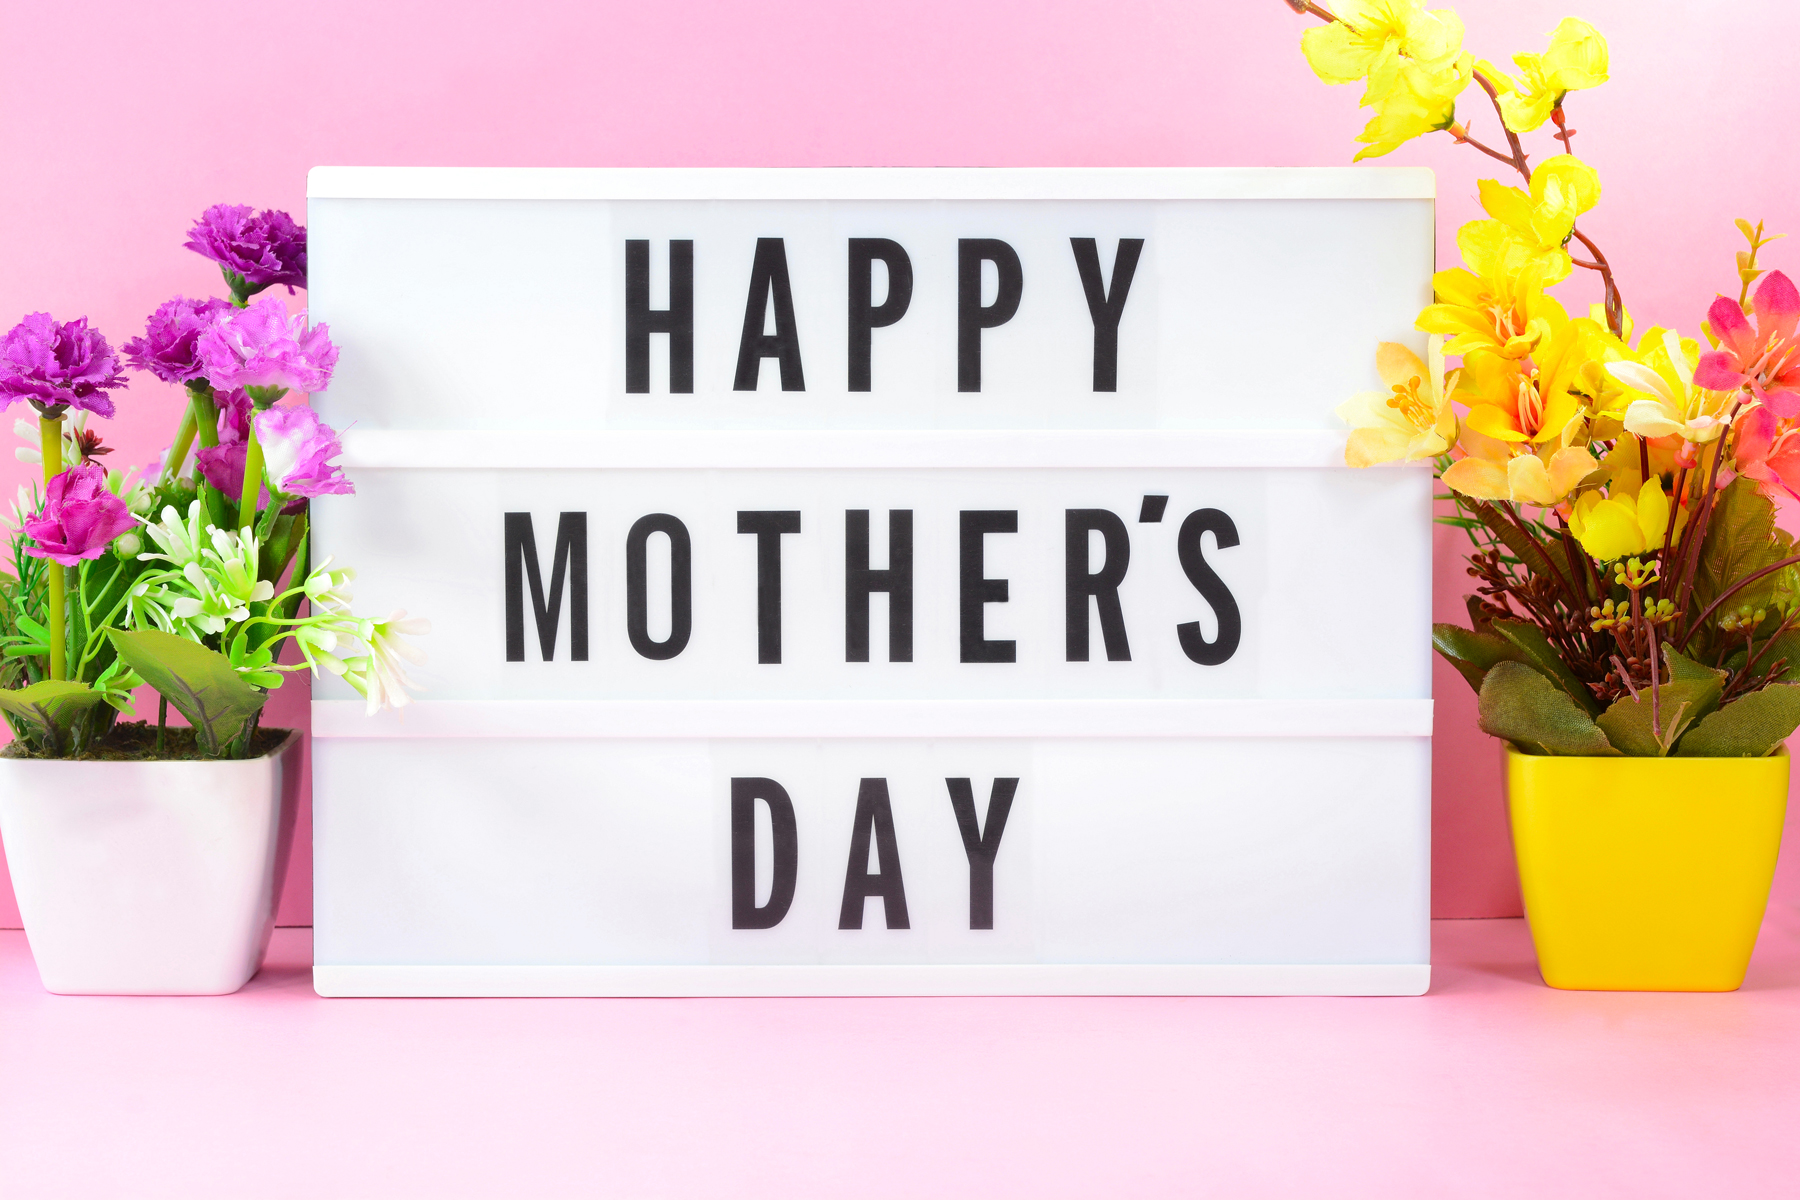 Mother's Day poems - poems for mom from son and daughter